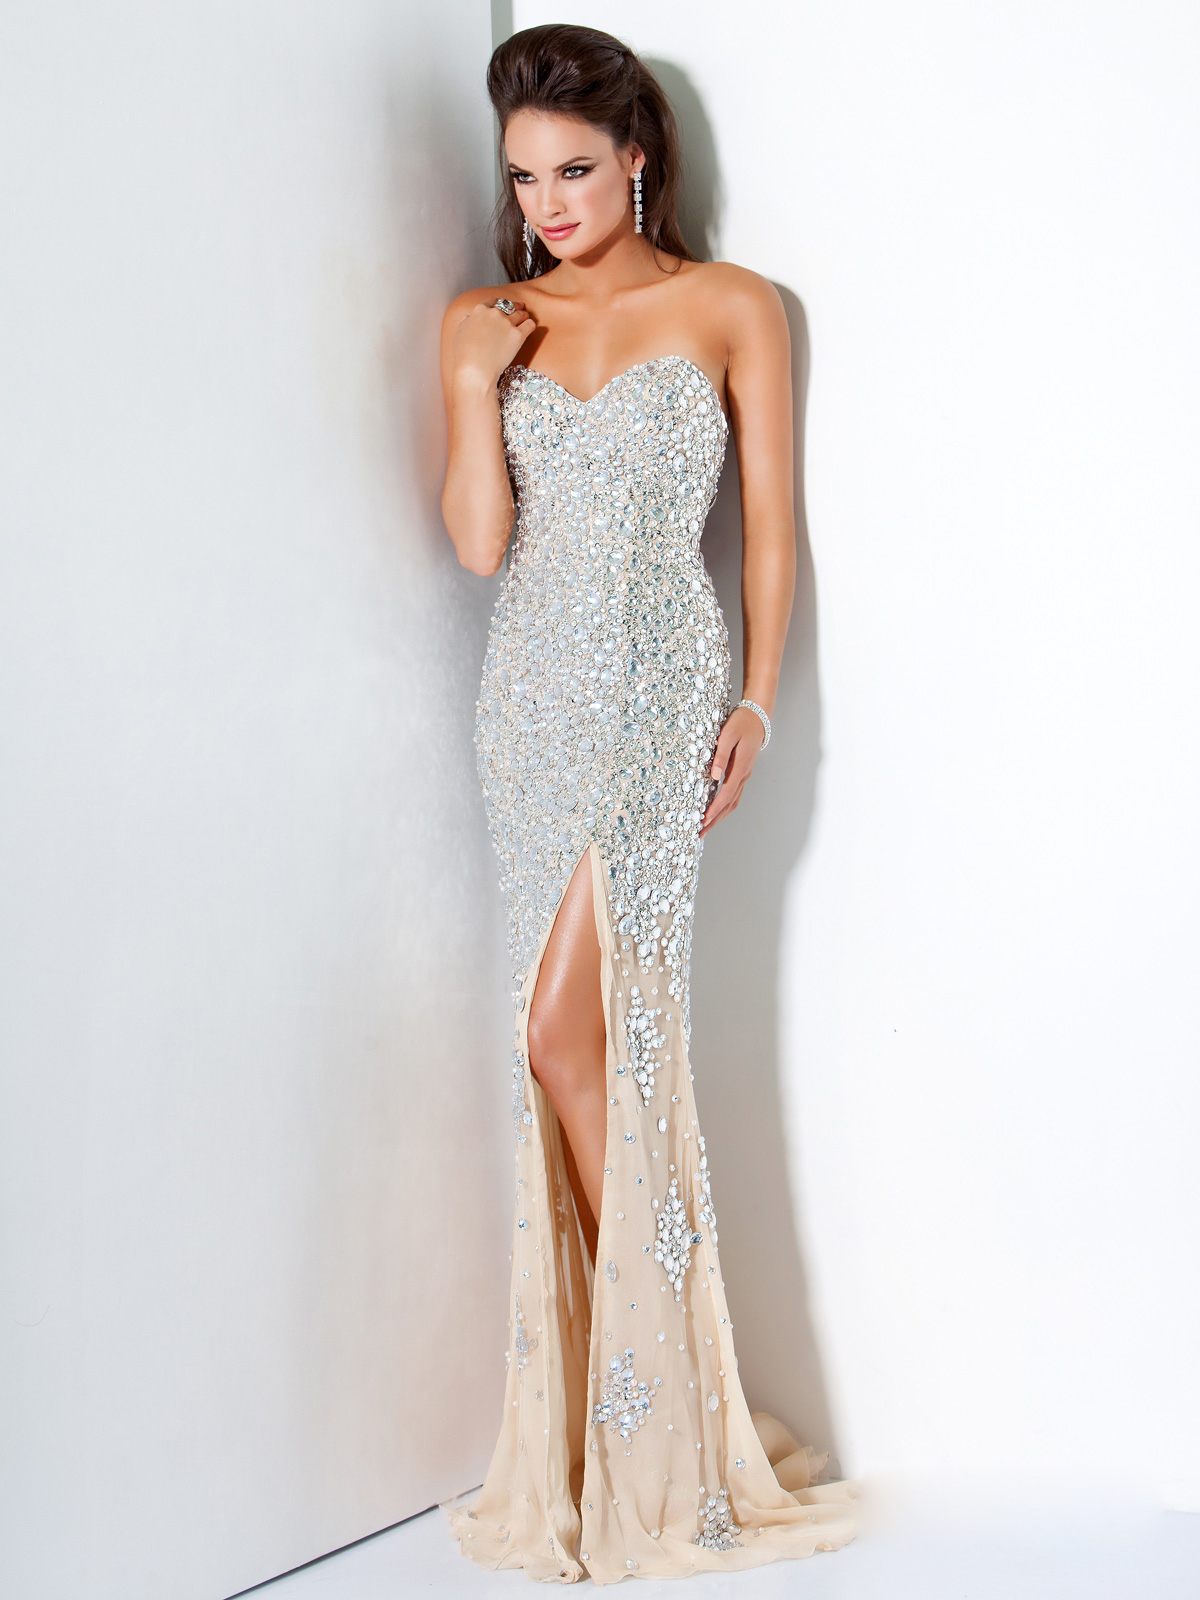 Silver Nude Crystal Encrusted Prom Evening Dress Jovani 4247 [SH165] - $258.00 :